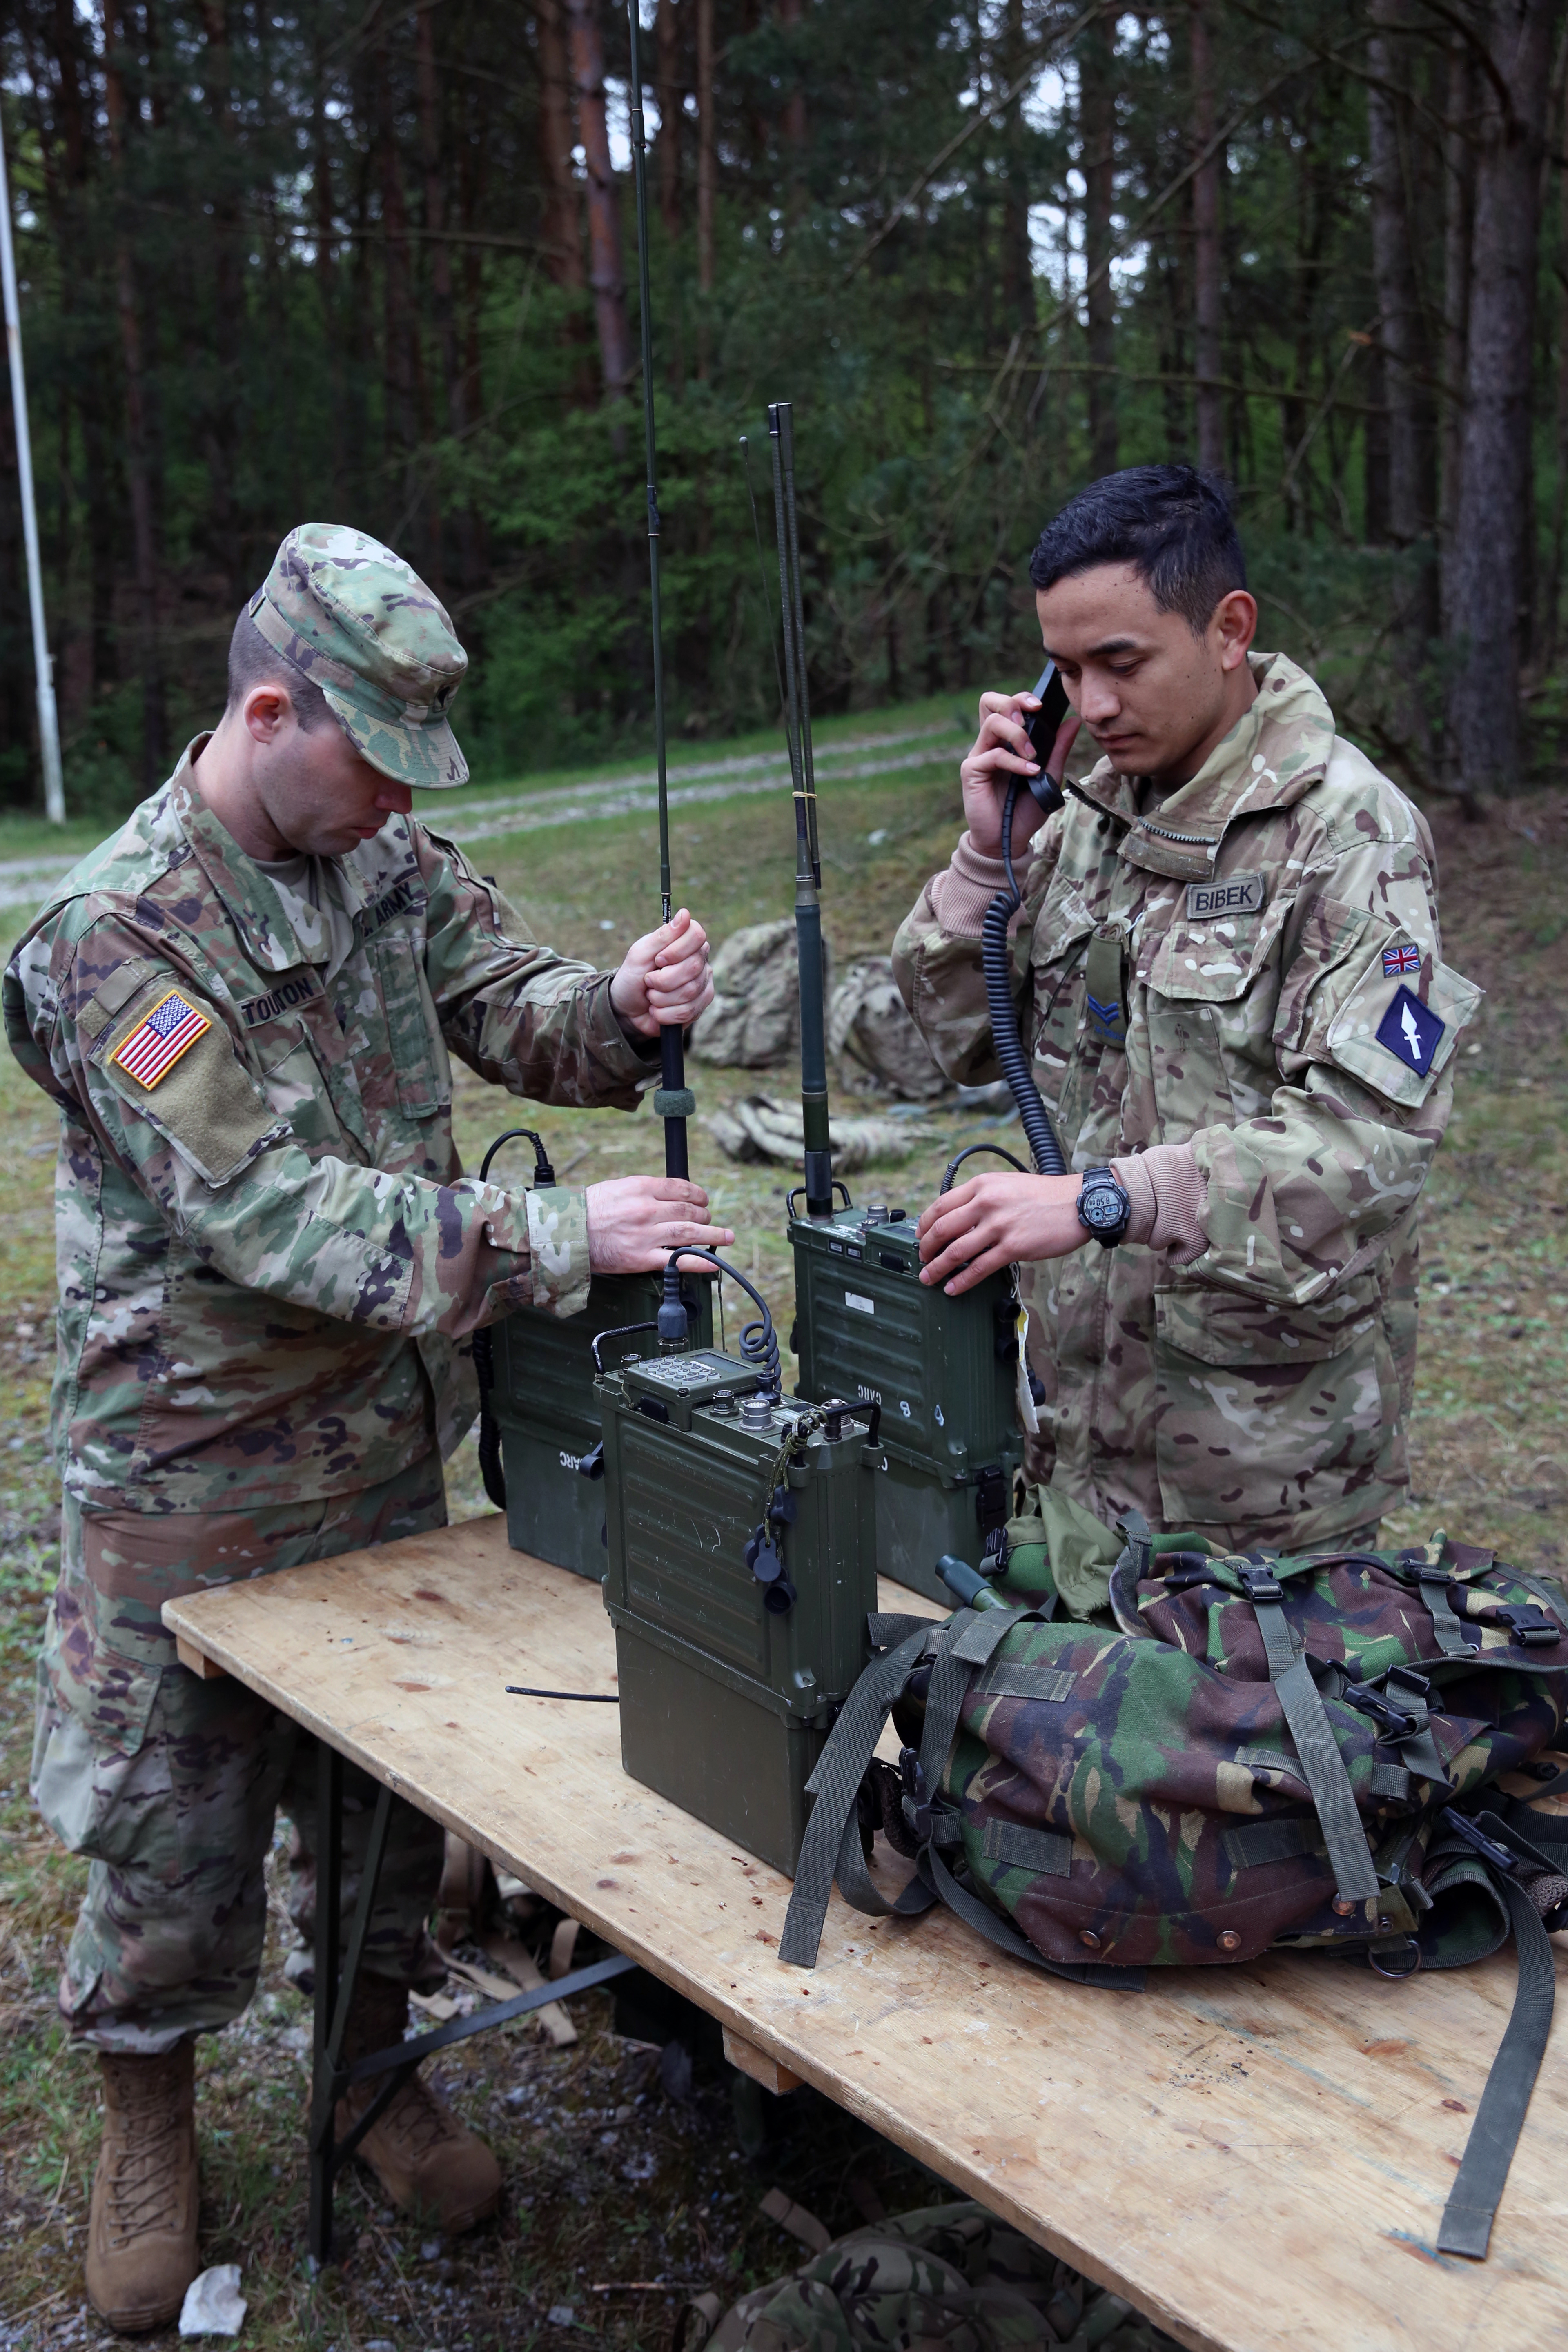 U.S. Army Spc. Jerrod Touchton, assigned to Bravo Company, 44th Expeditionary Signal Battalion, 2nd Theater Signal Brigade, and British Army Cpl. Bibek Gurung, assigned to the 250th Signal Squadron, Queen's Gurkha Signals, set up radios and test communications during exercise Stoney Run, April 24, 2018 in the Sennelager Training Area, Germany. Stoney Run is an annual U.S.-U.K. signal exercise designed to test and validate communications and network capabilities, and enhance interoperability and partner capacity between the two NATO allies. (U.S. Army photo by William B. King)